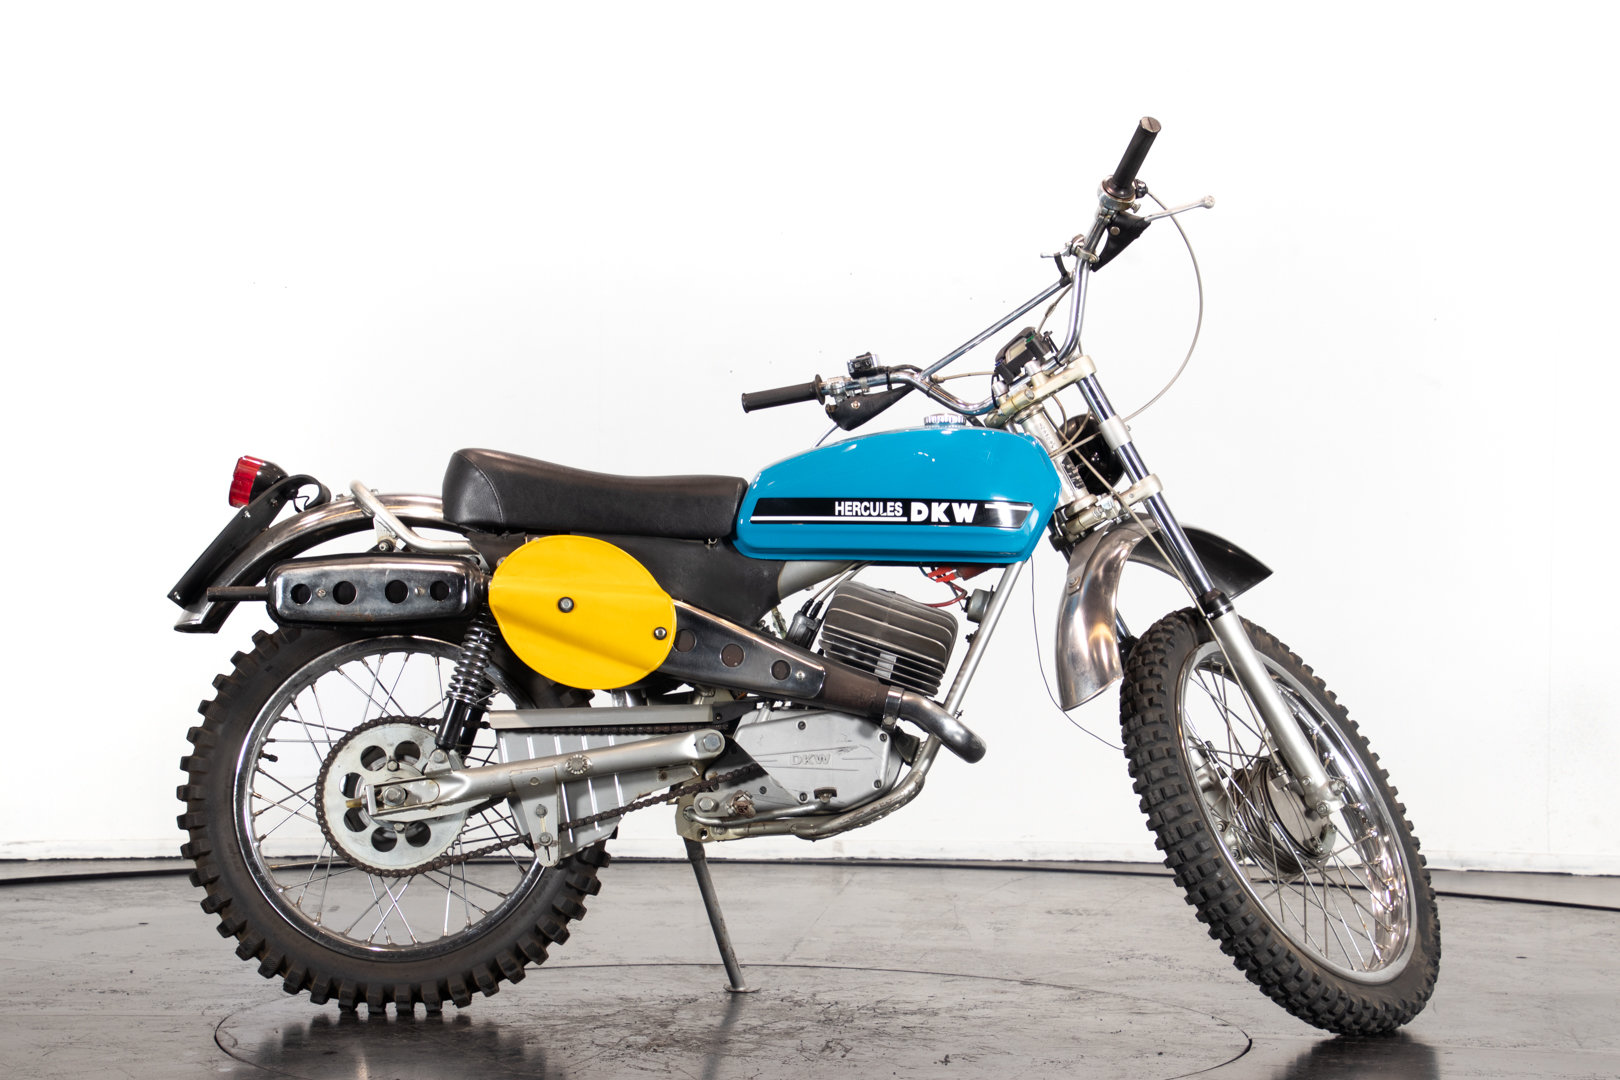 DKW - HERCULES 125 GS - 1973 For Sale (picture 2 of 6)